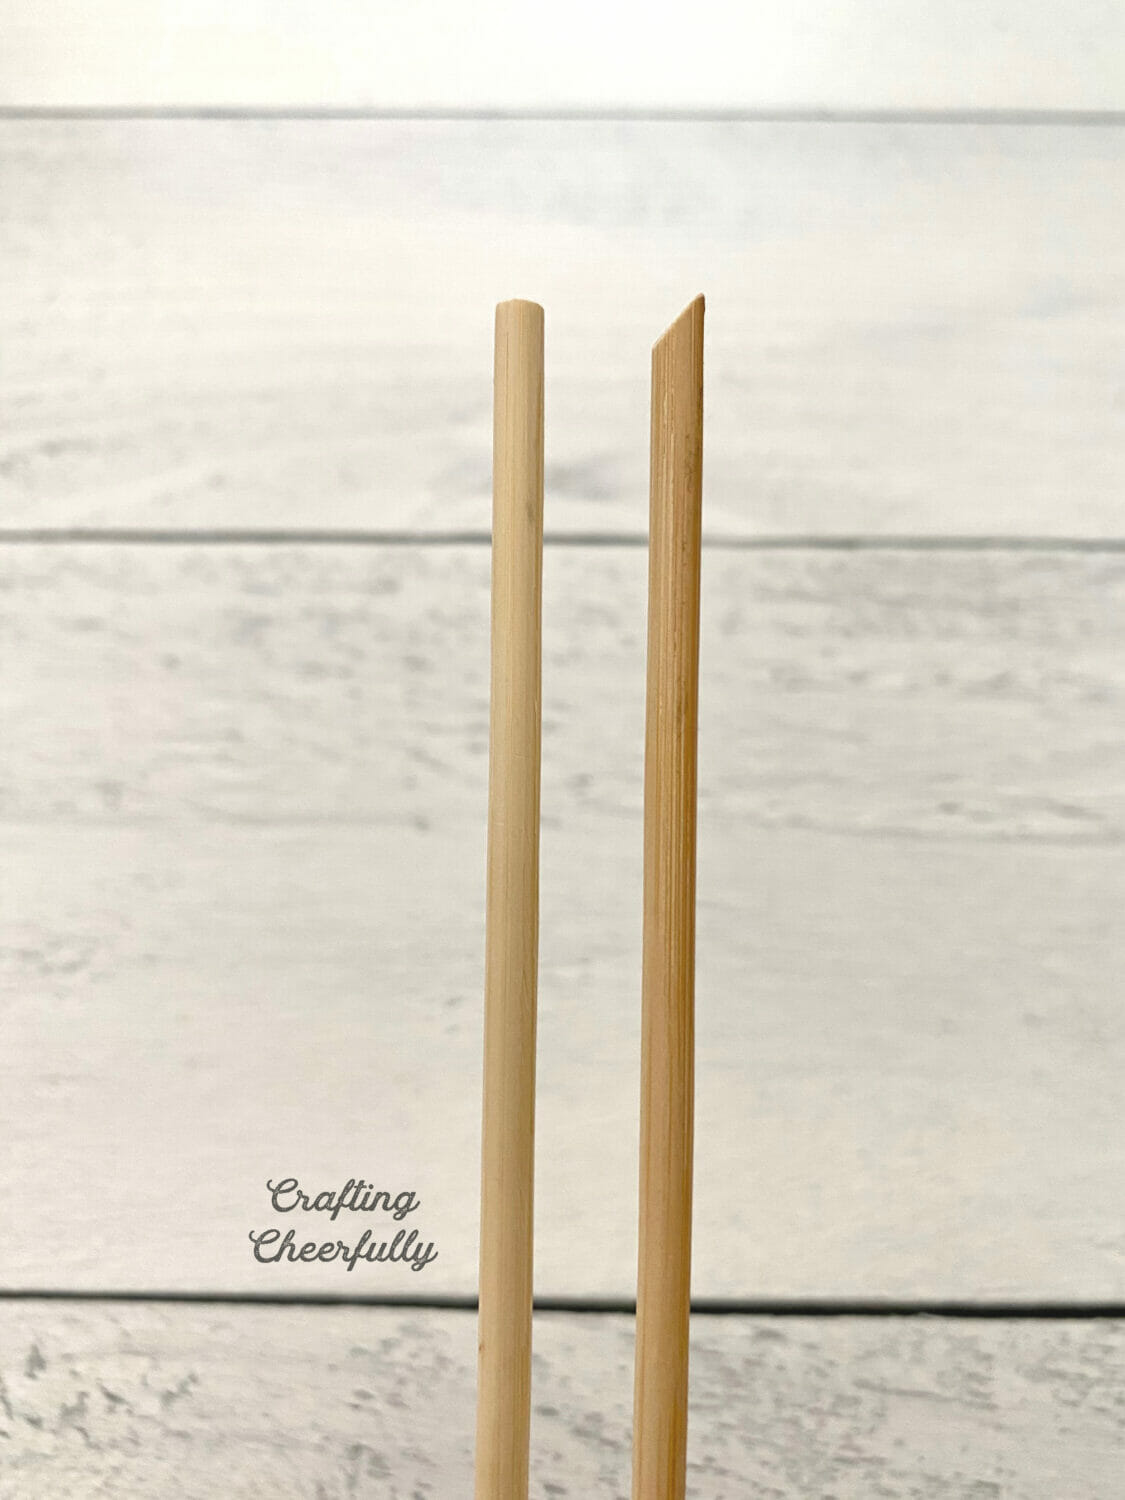 The ends of two wooden dowels are shown, one has been sanded at an angle.